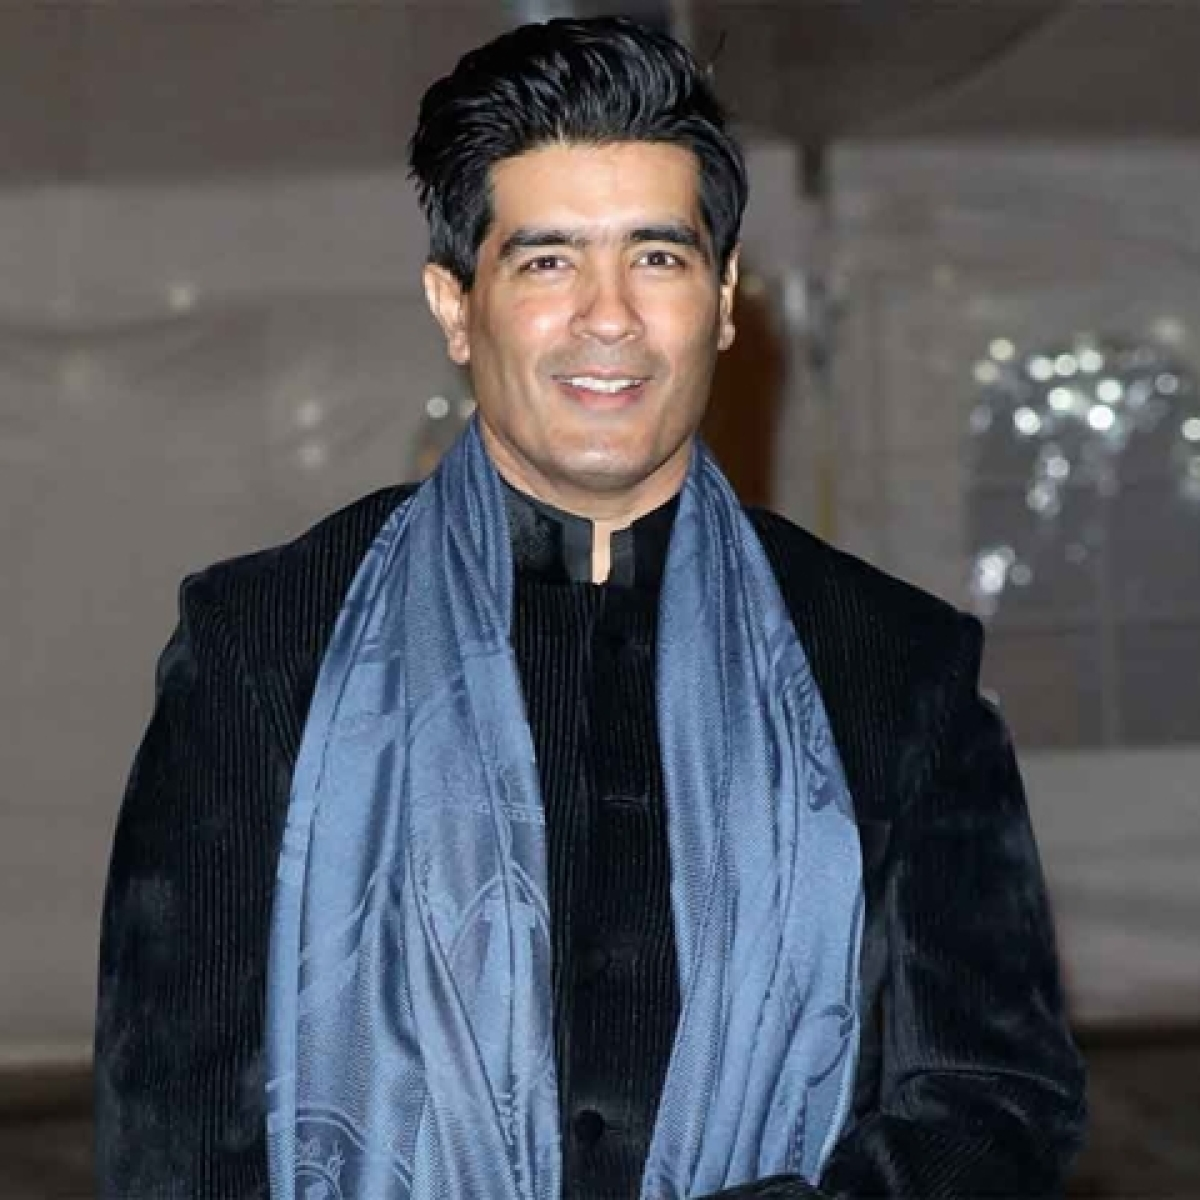 'Worked at a boutique for Rs 500 a month': Fashion designer Manish Malhotra opens up on life struggles